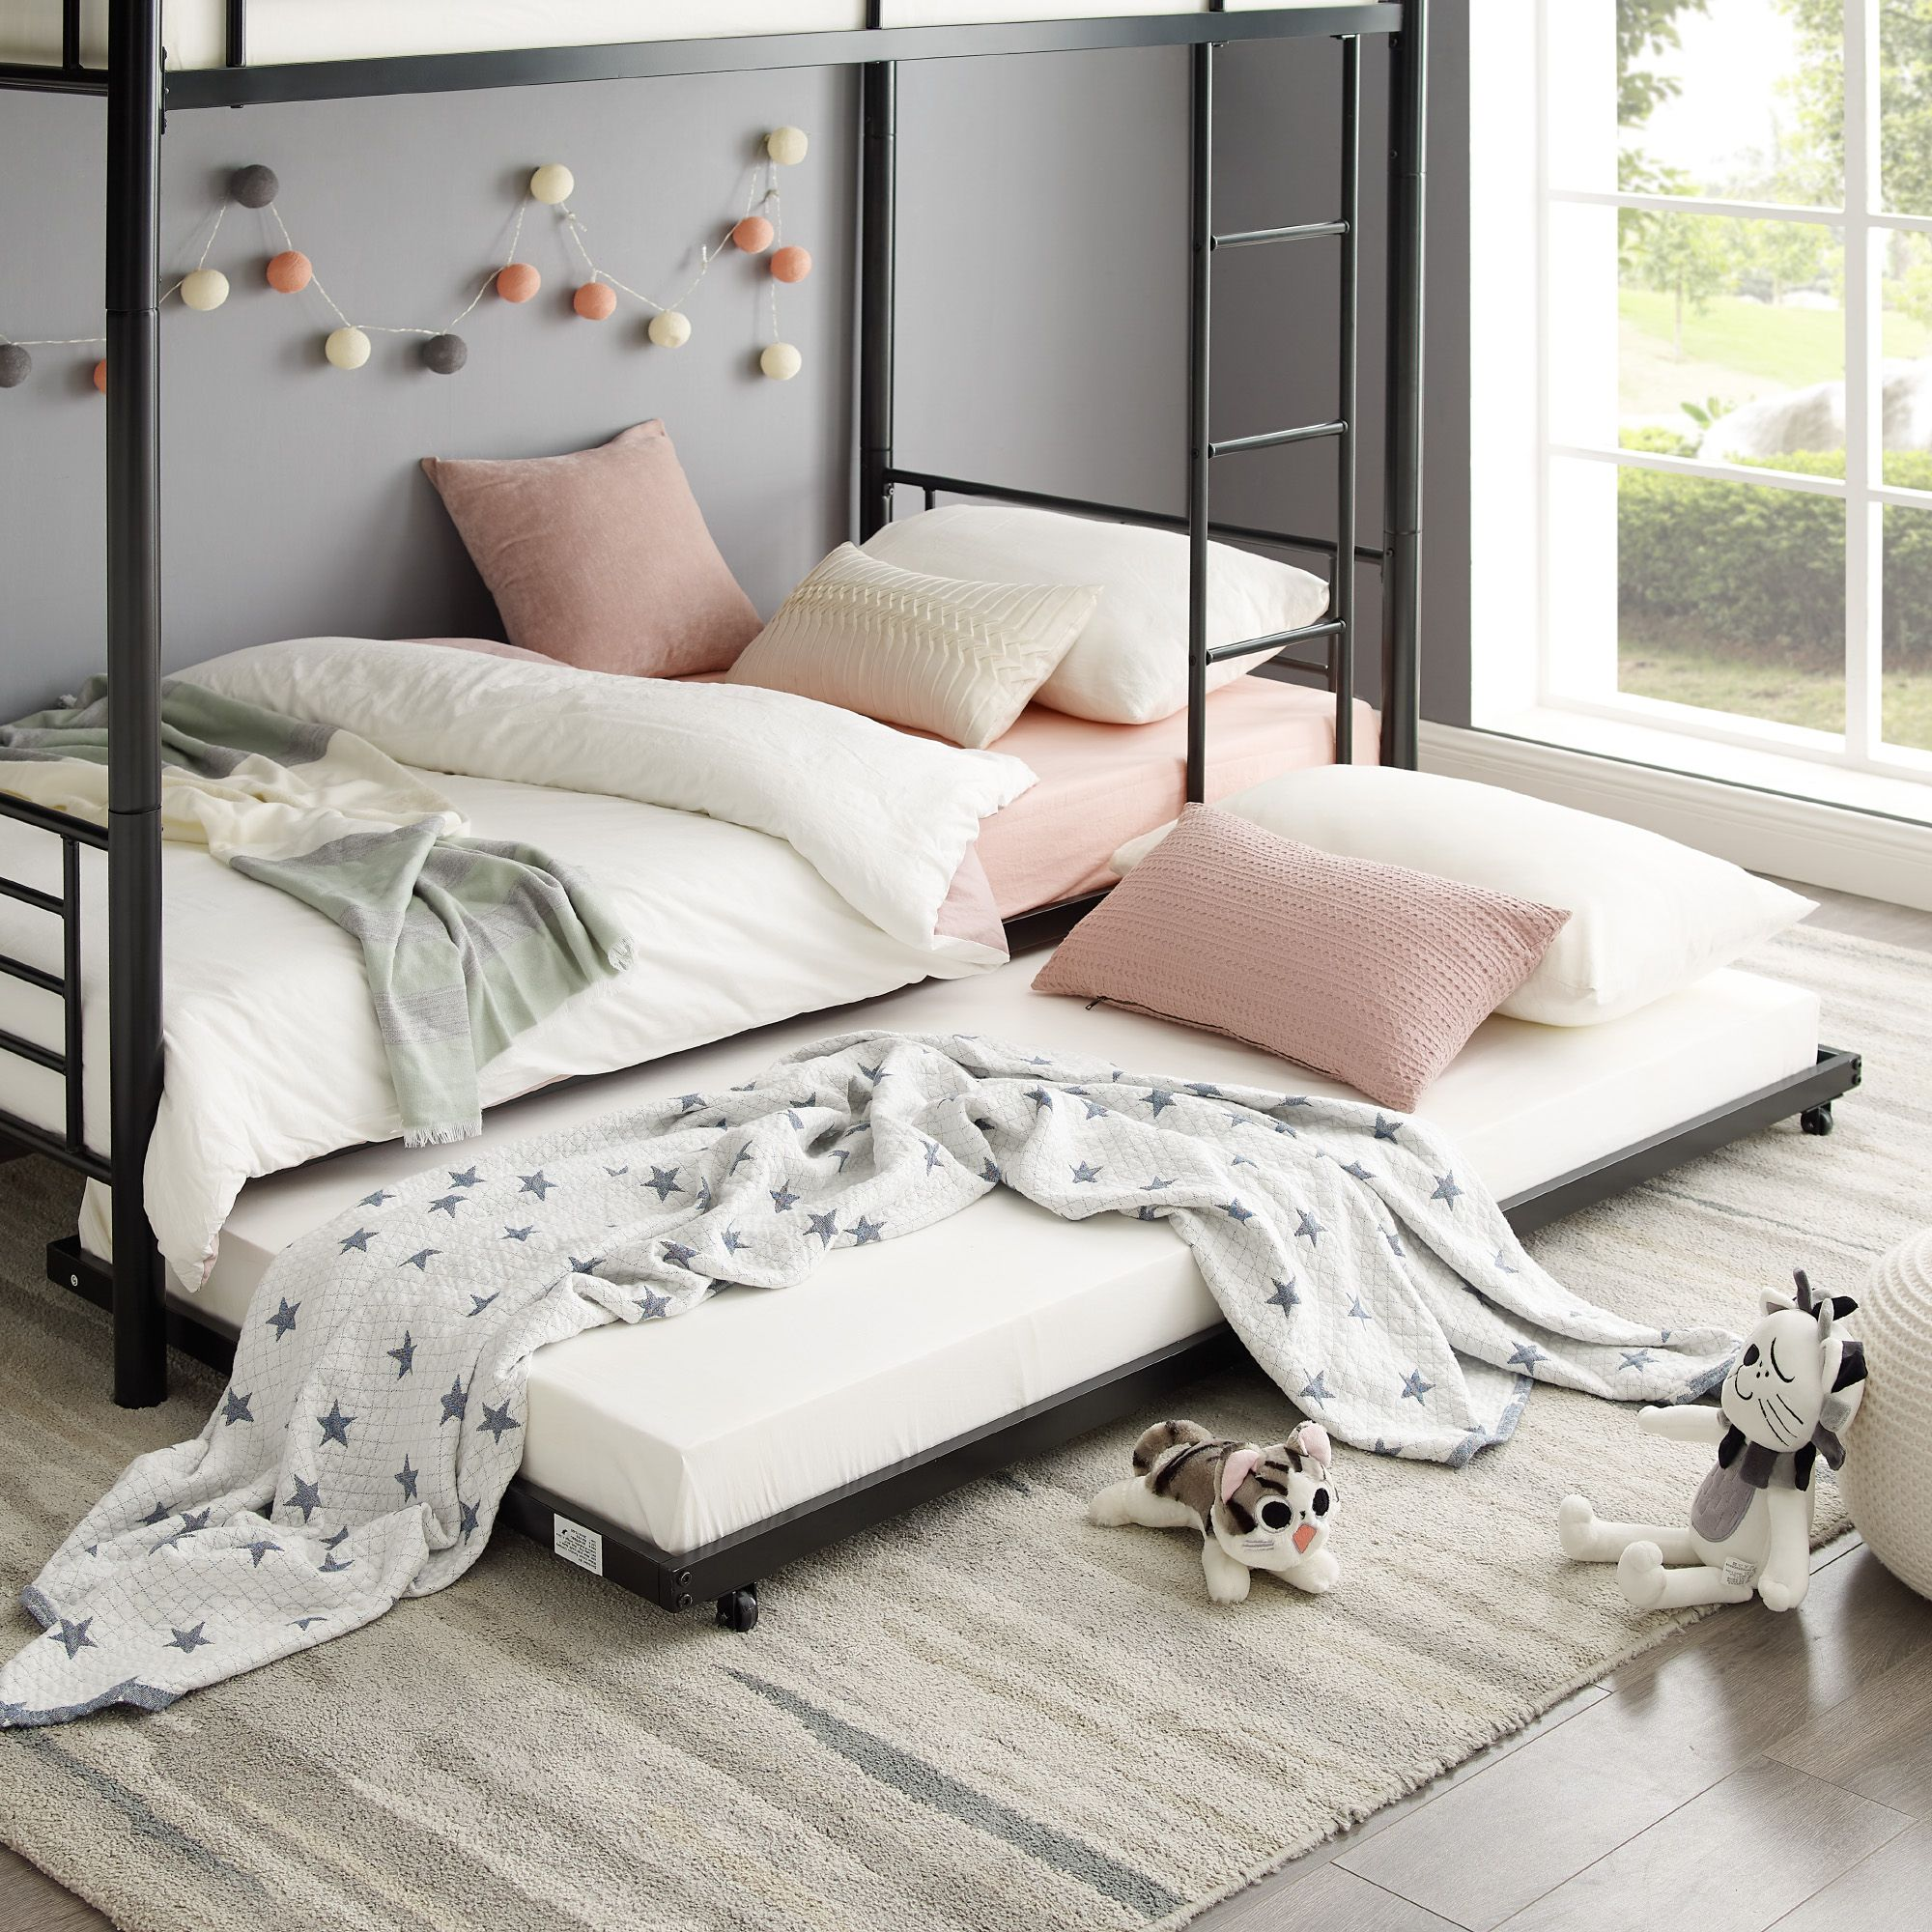 Twin Roll Out Trundle Bed Frame Black In 2020 Trundle Bed